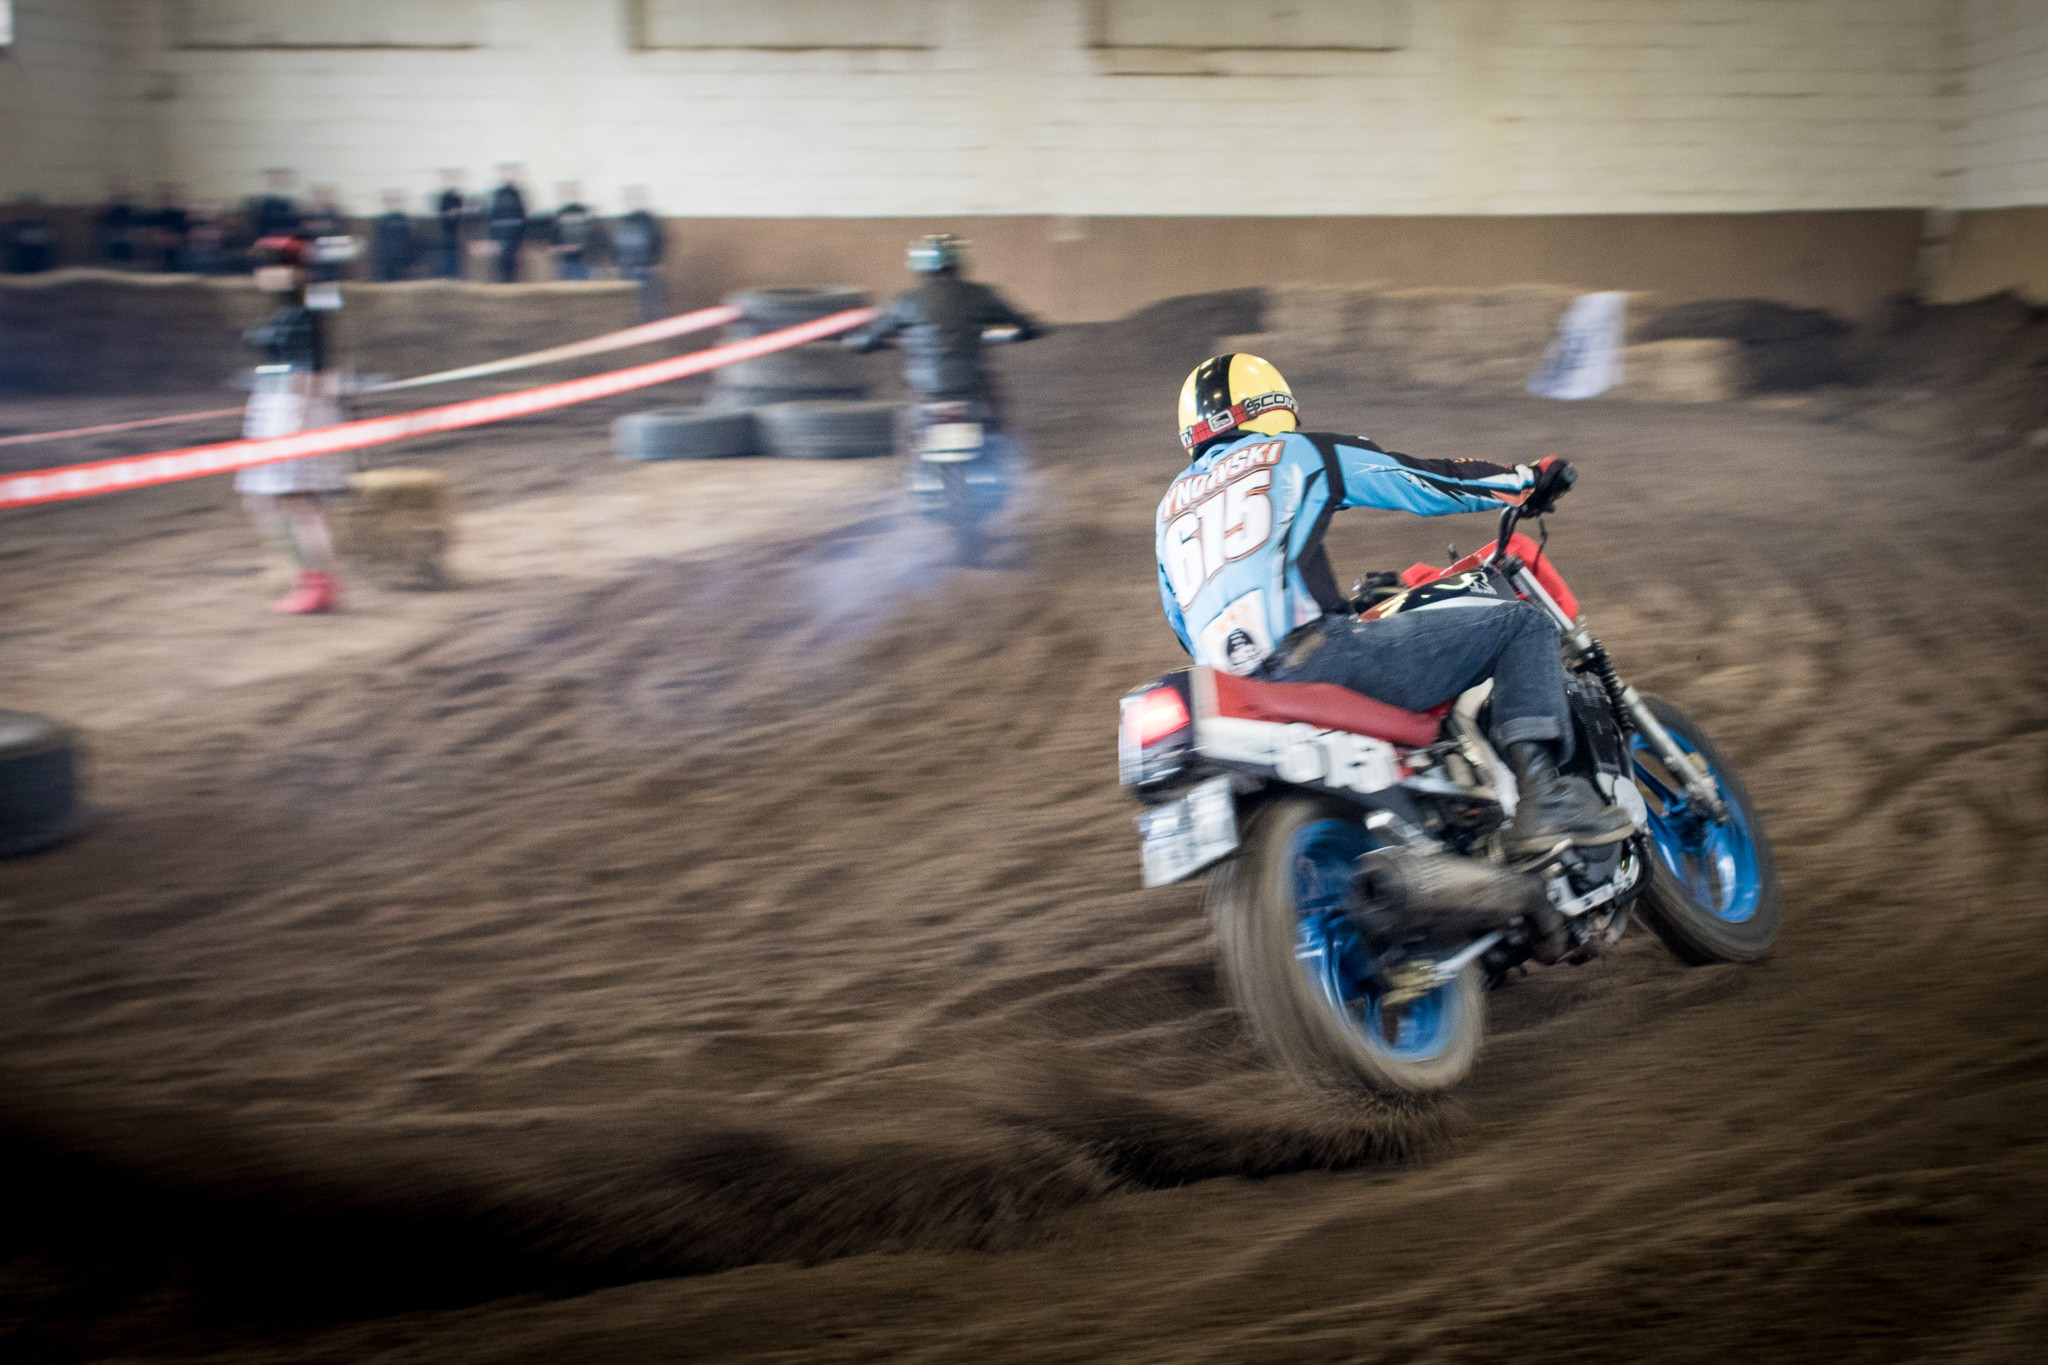 Donkey Dash racing during Custom Days in Przywidz